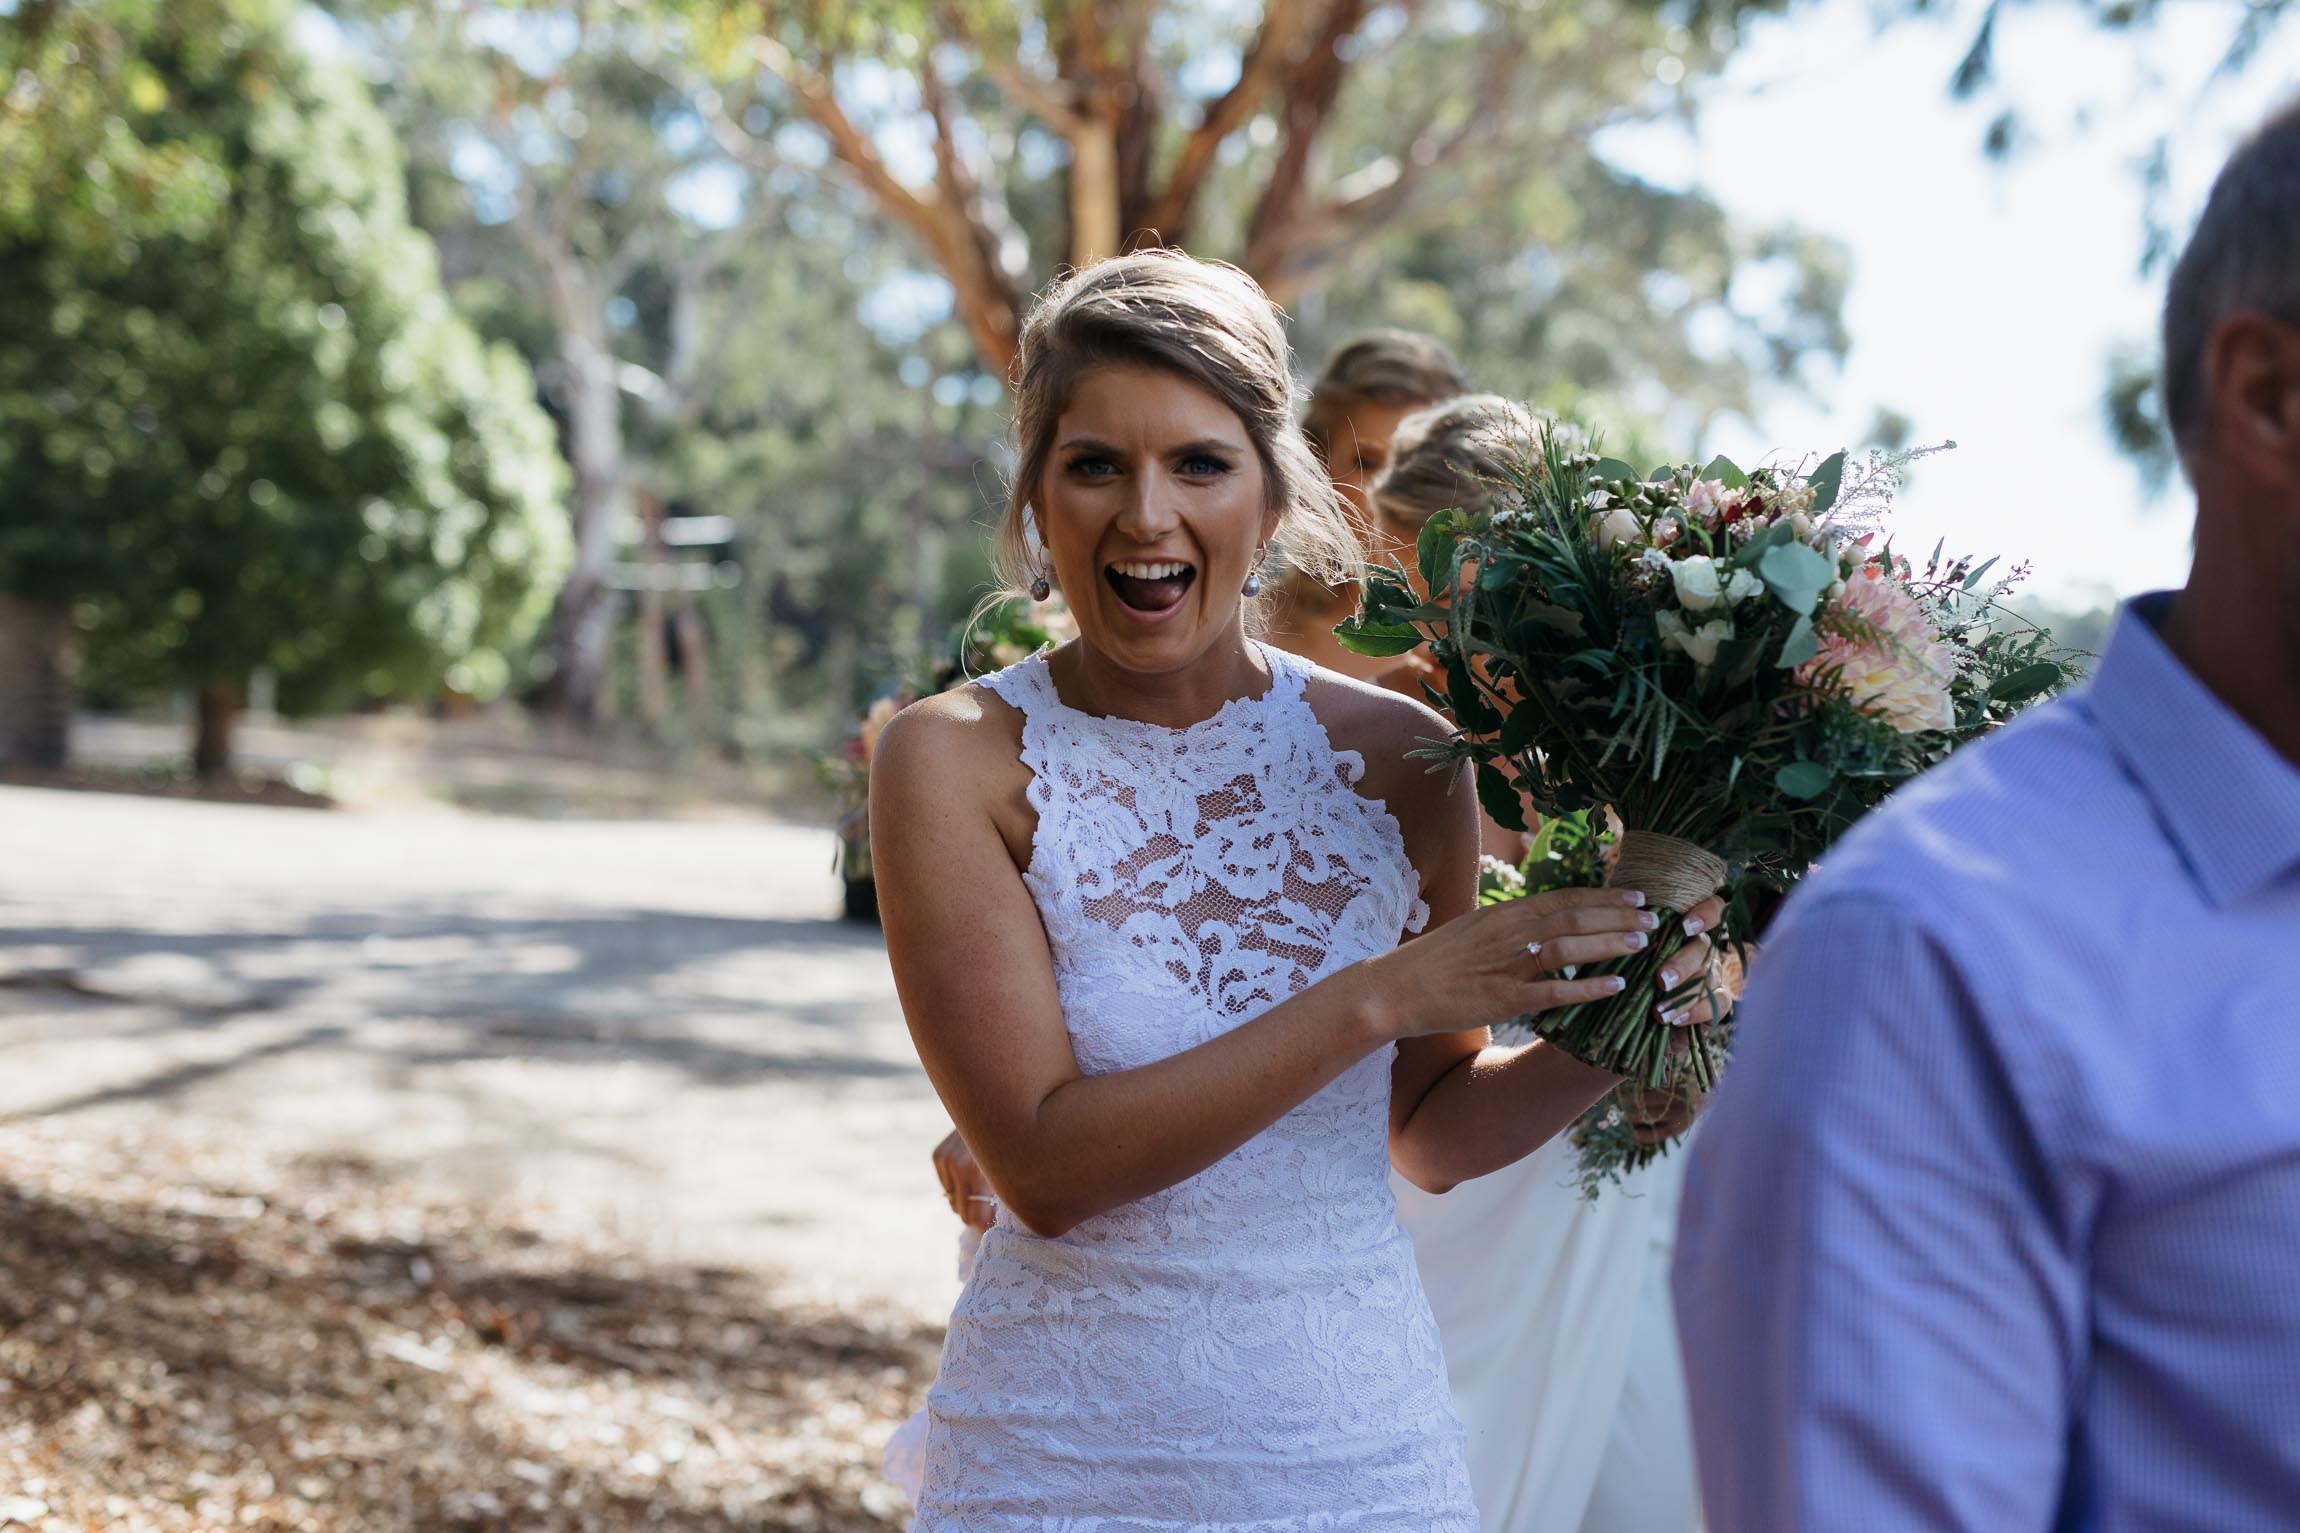 lachlan-scallion-melbourne-victoria-austrlia-mornington-peninsula-candid-relaxed-natural-chilled-wedding-photographyglasshaus-richmond-241.jpg